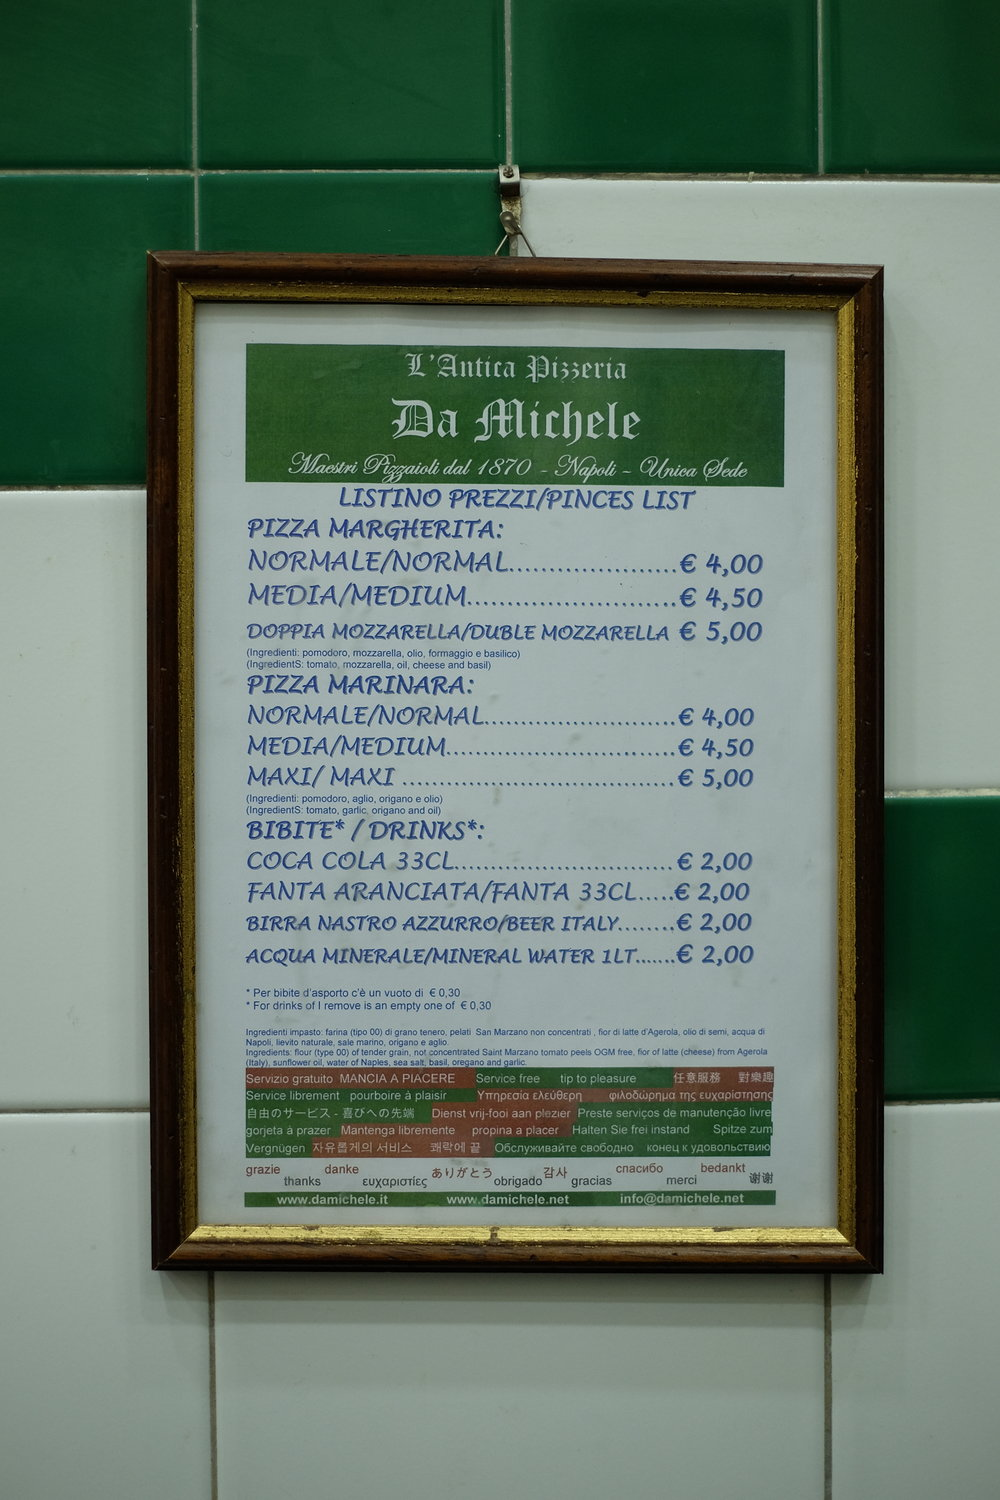 The menu at Antica pizzeria da Michele in Napoli.